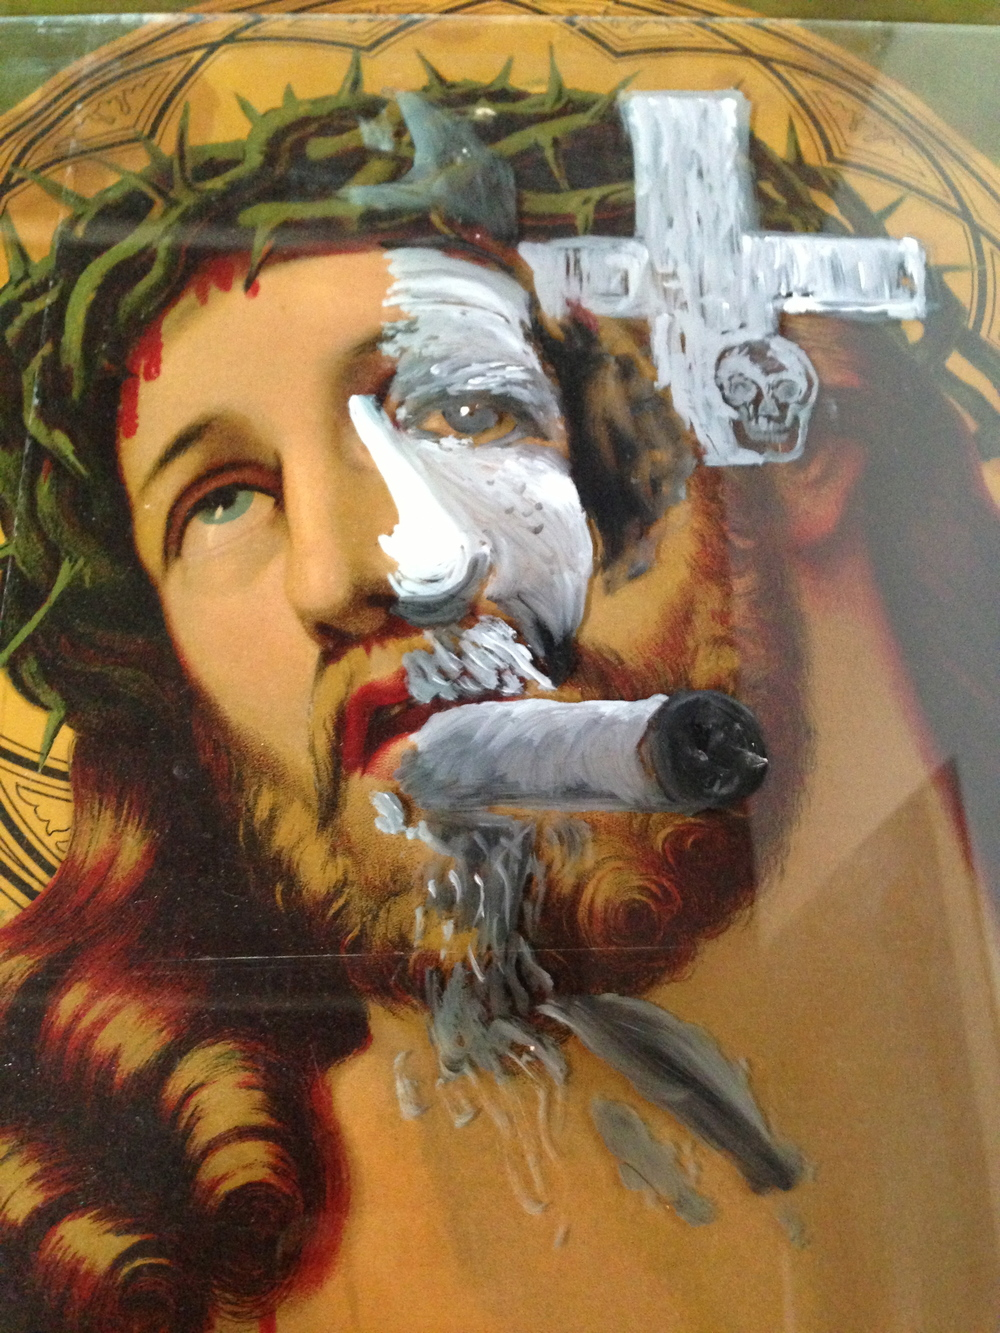 Jesus/Rebel Assemblage - paint on glass overlay 2013